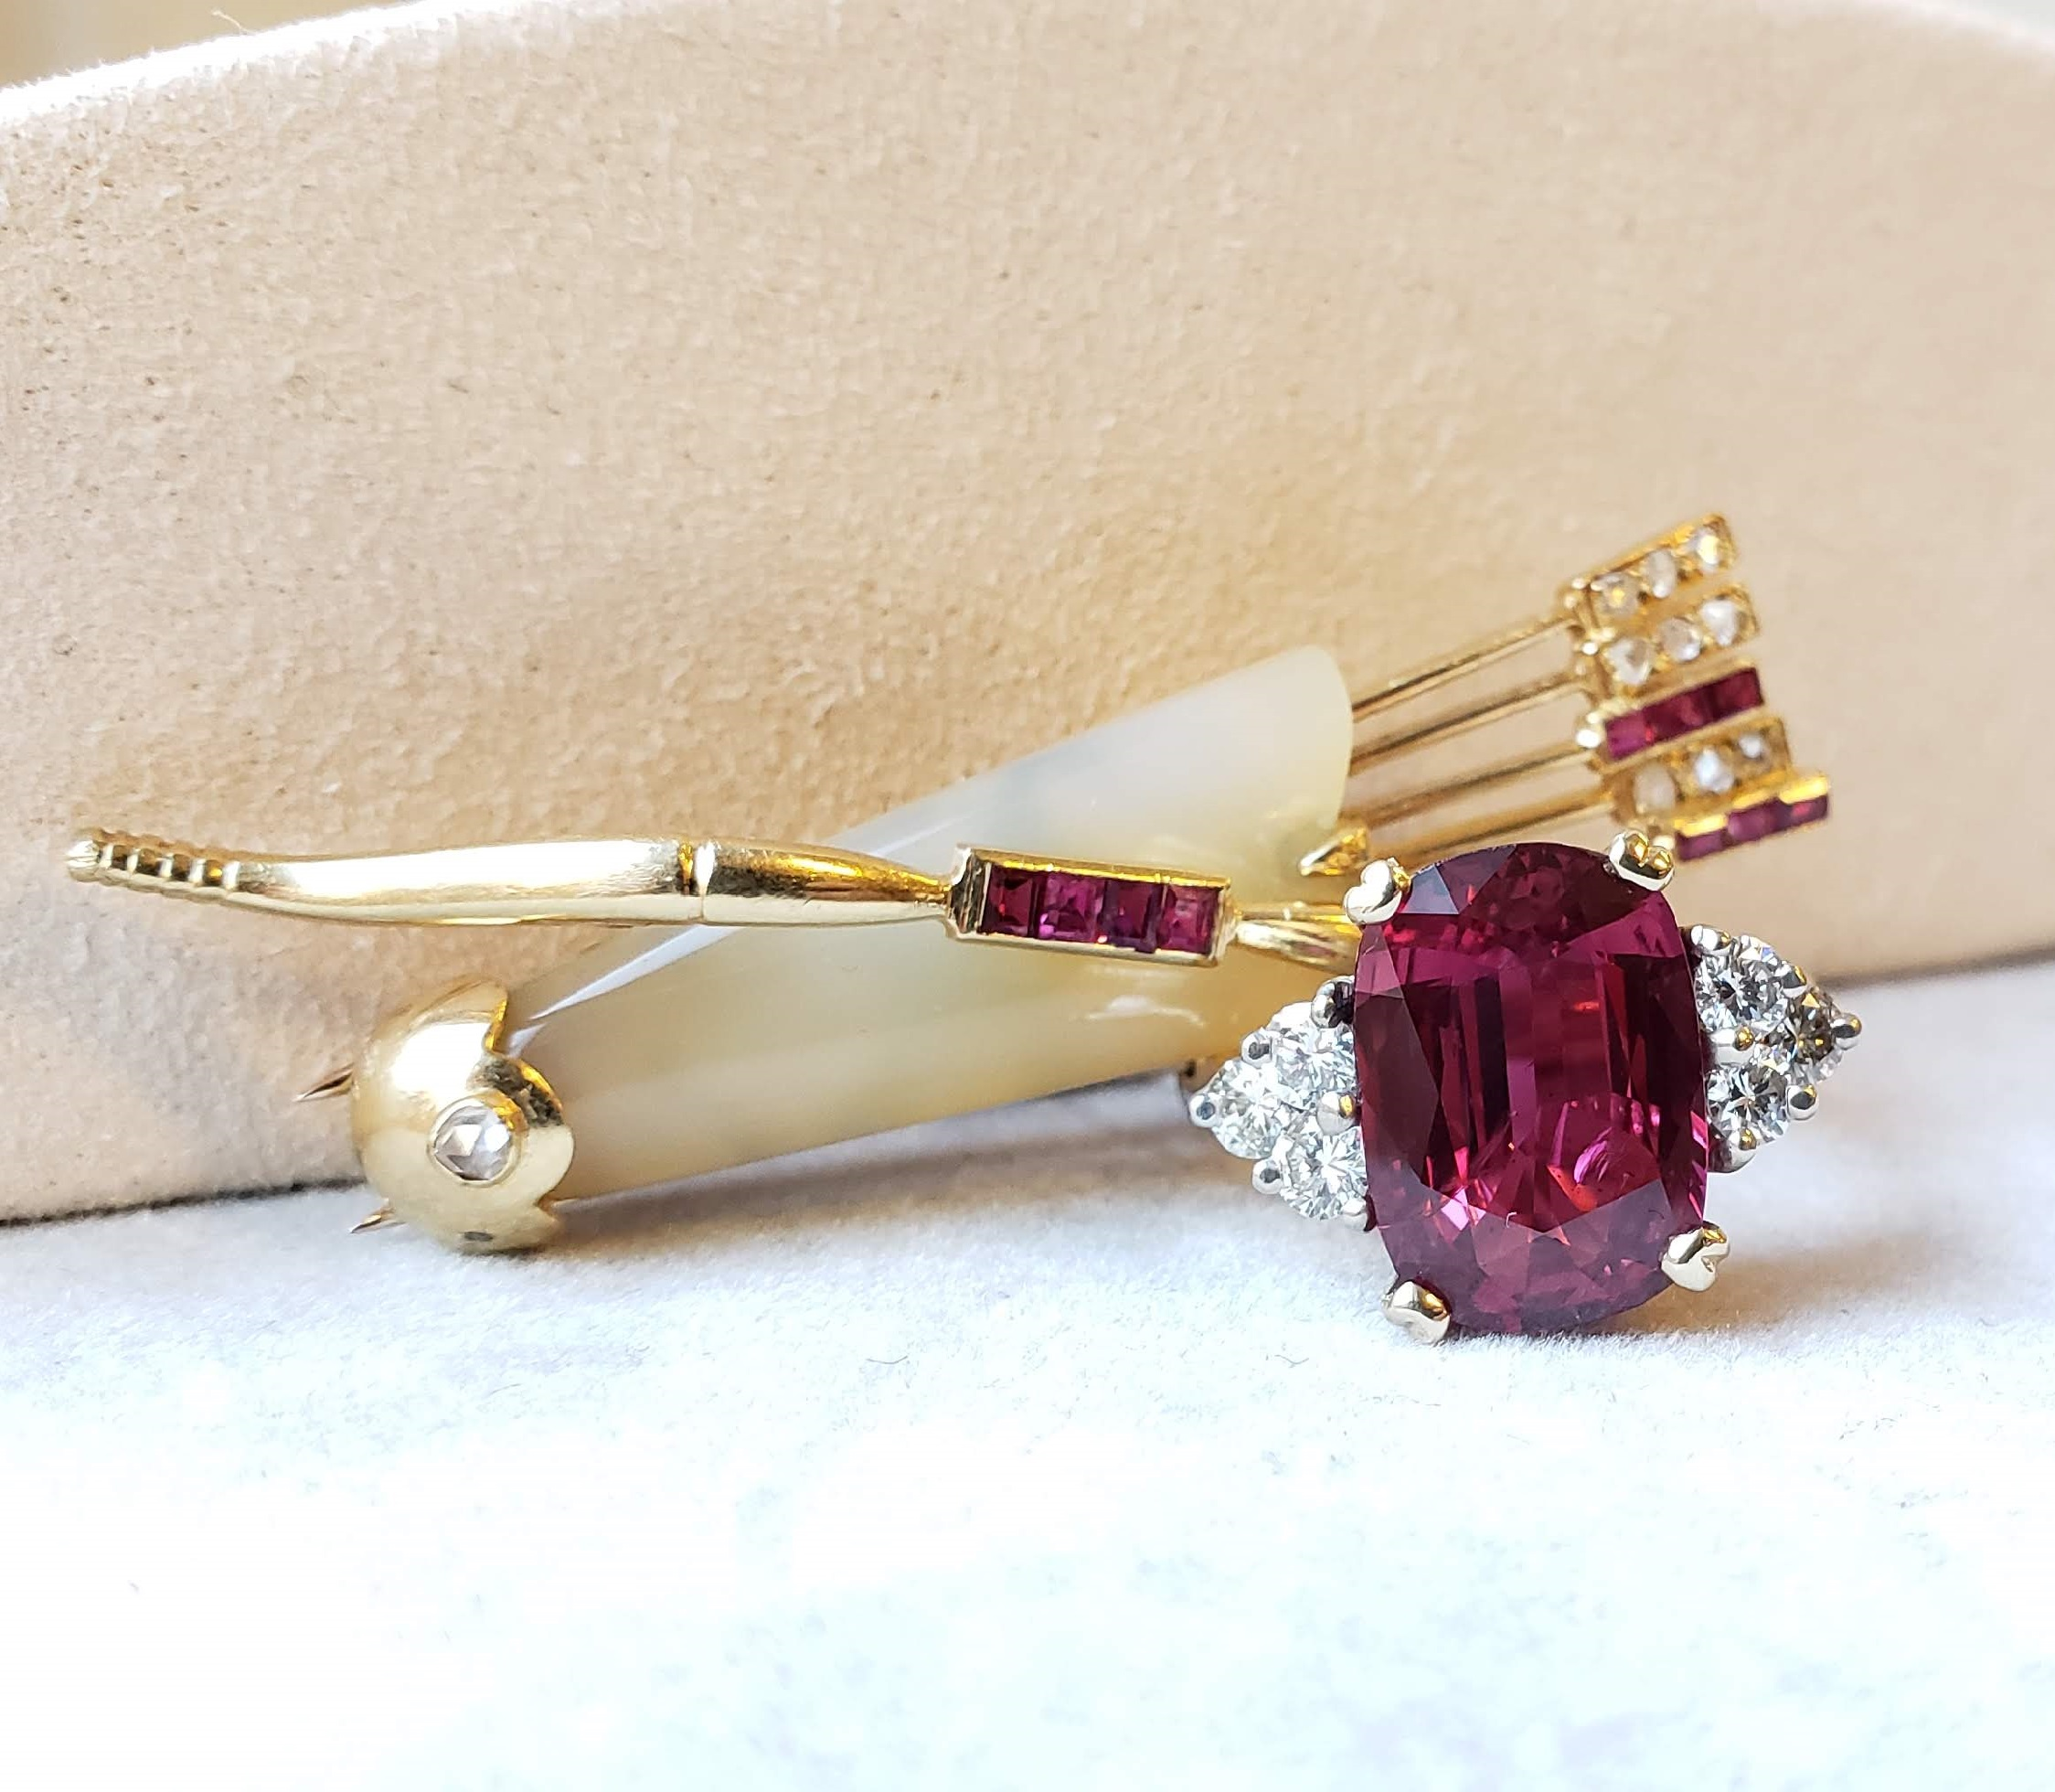 Cartier Quiver and Arrow brooch and ruby and diamond ring featured in Christie's online jewelry auction. Photo Christie's